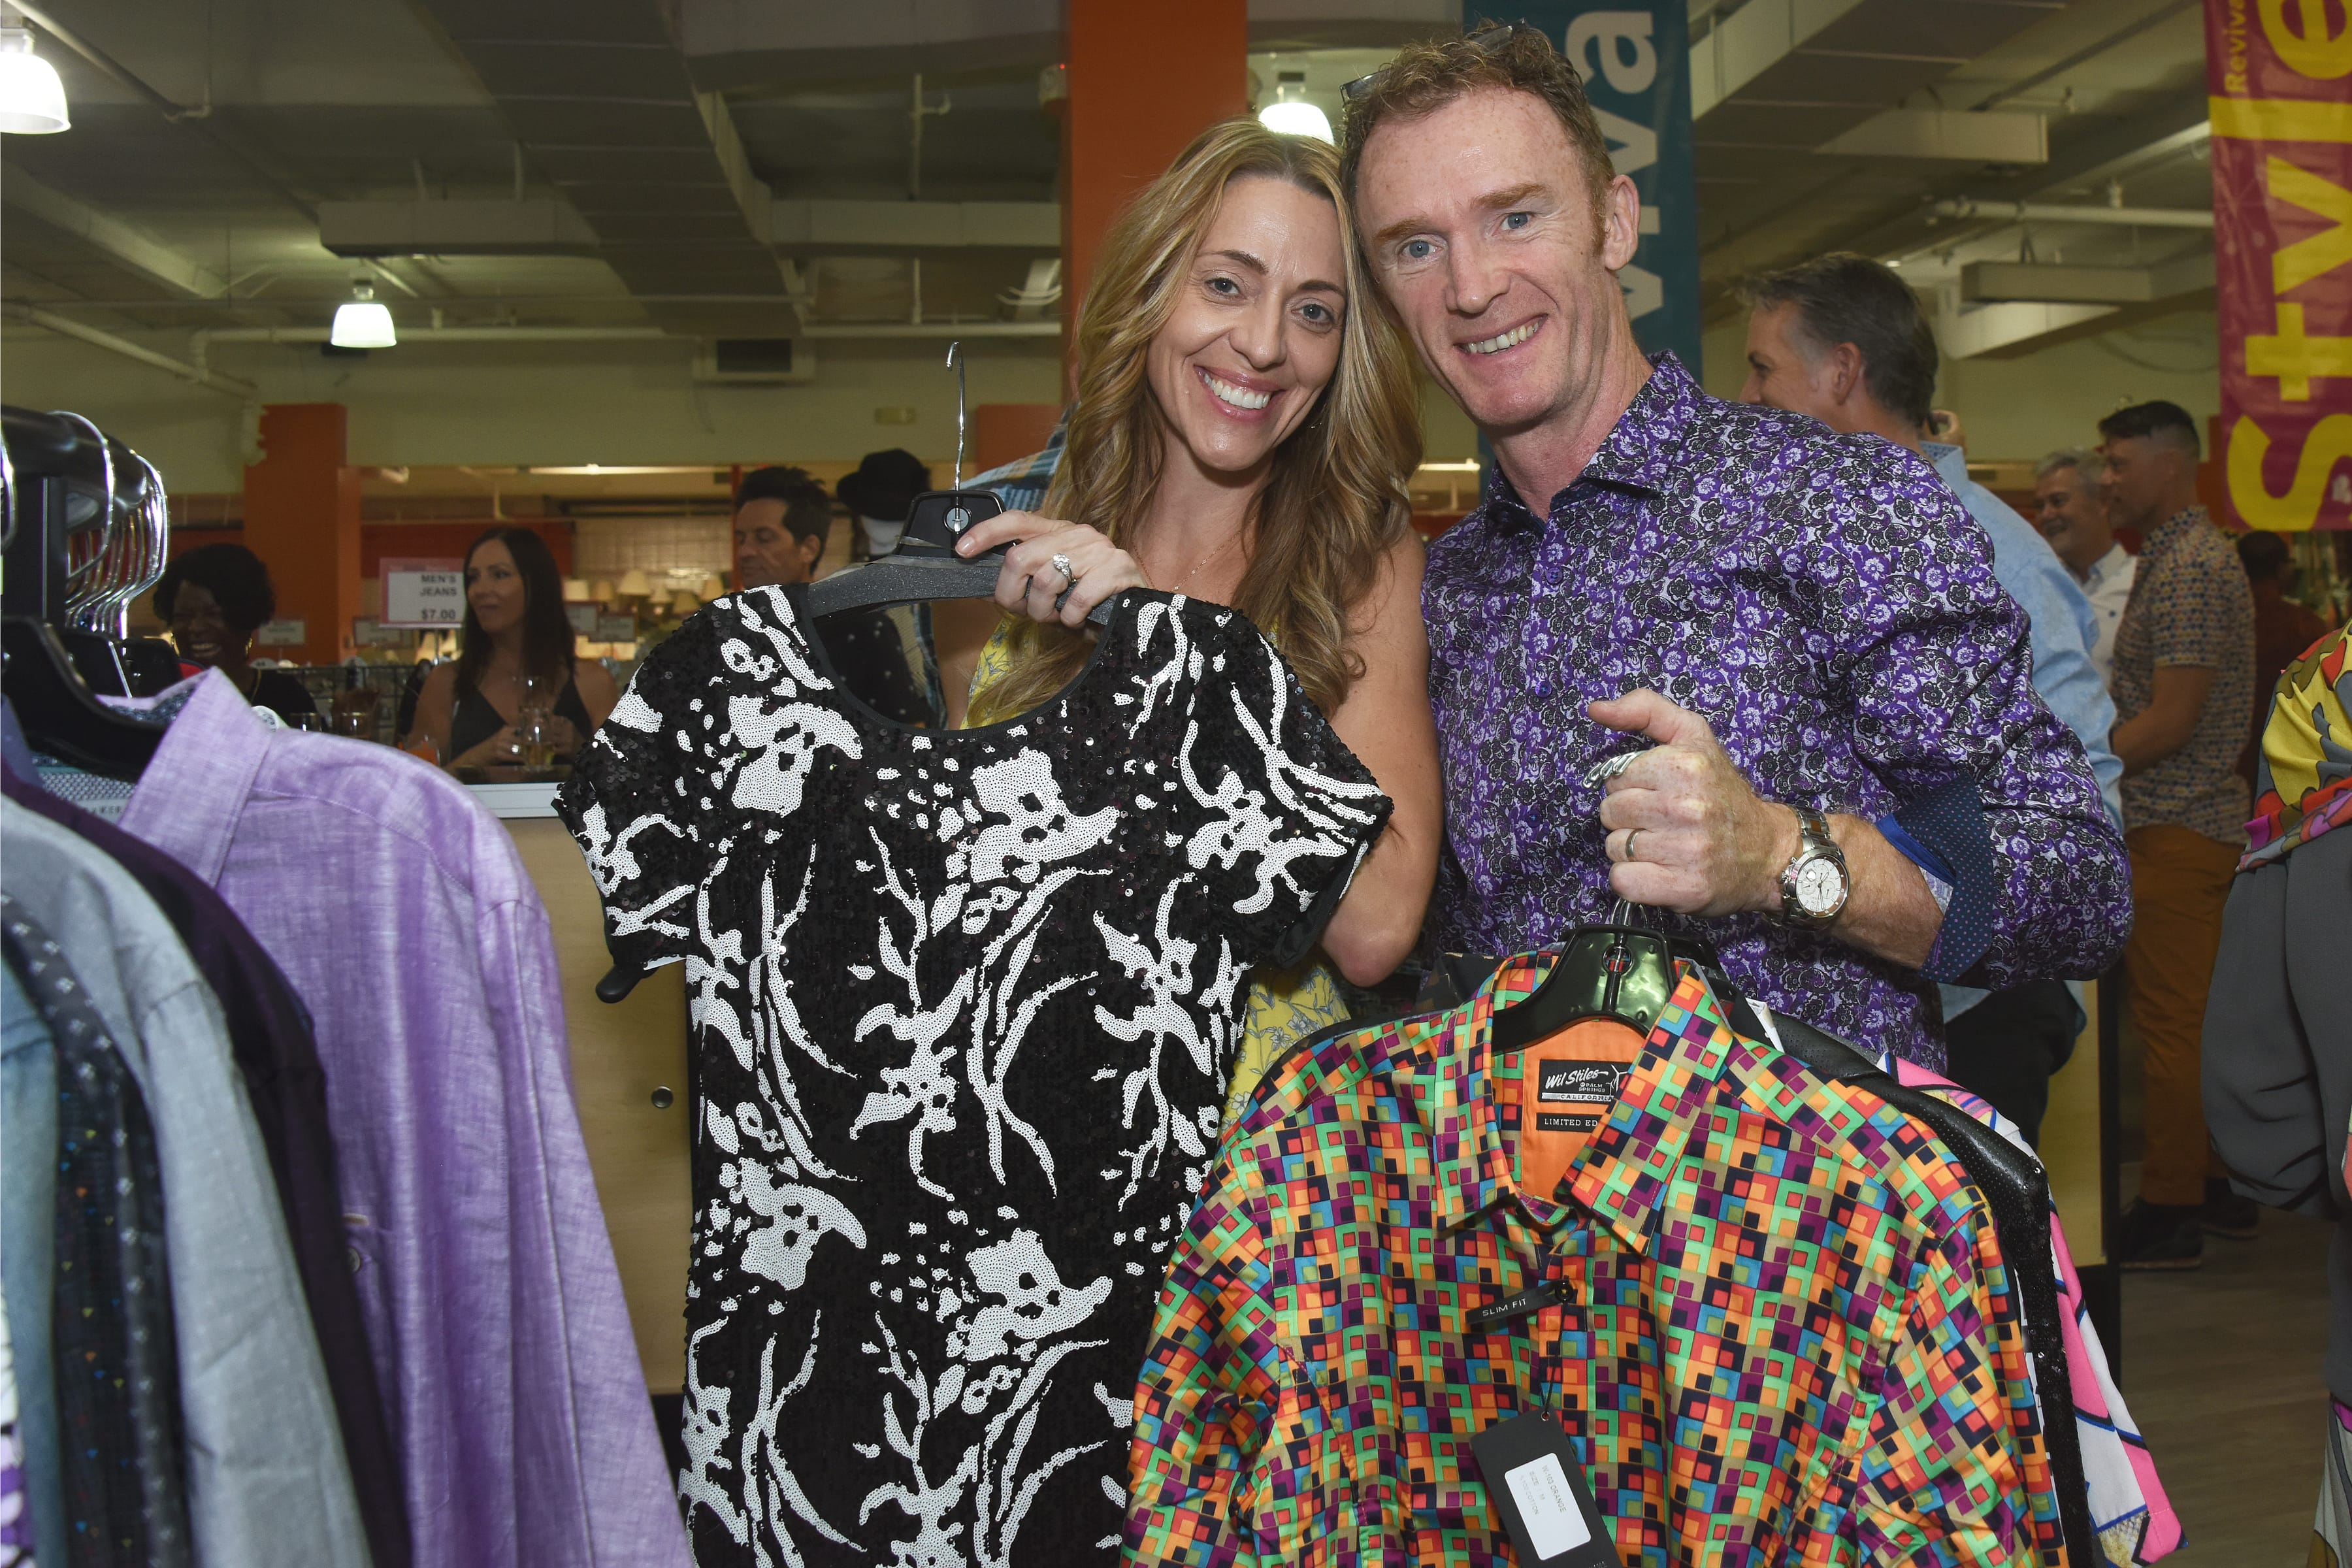 Wil Stiles Clothing Hits the Racks at Revivals Stores